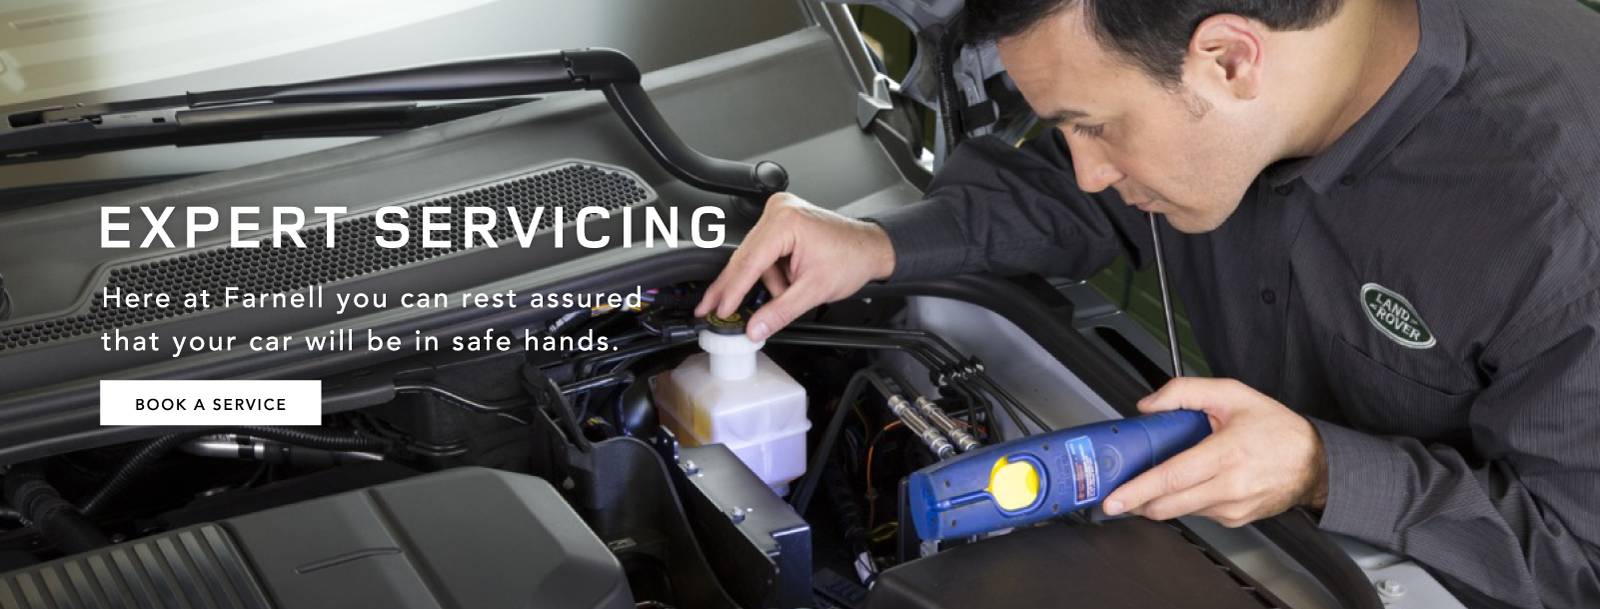 Land Rover Expert Servicing